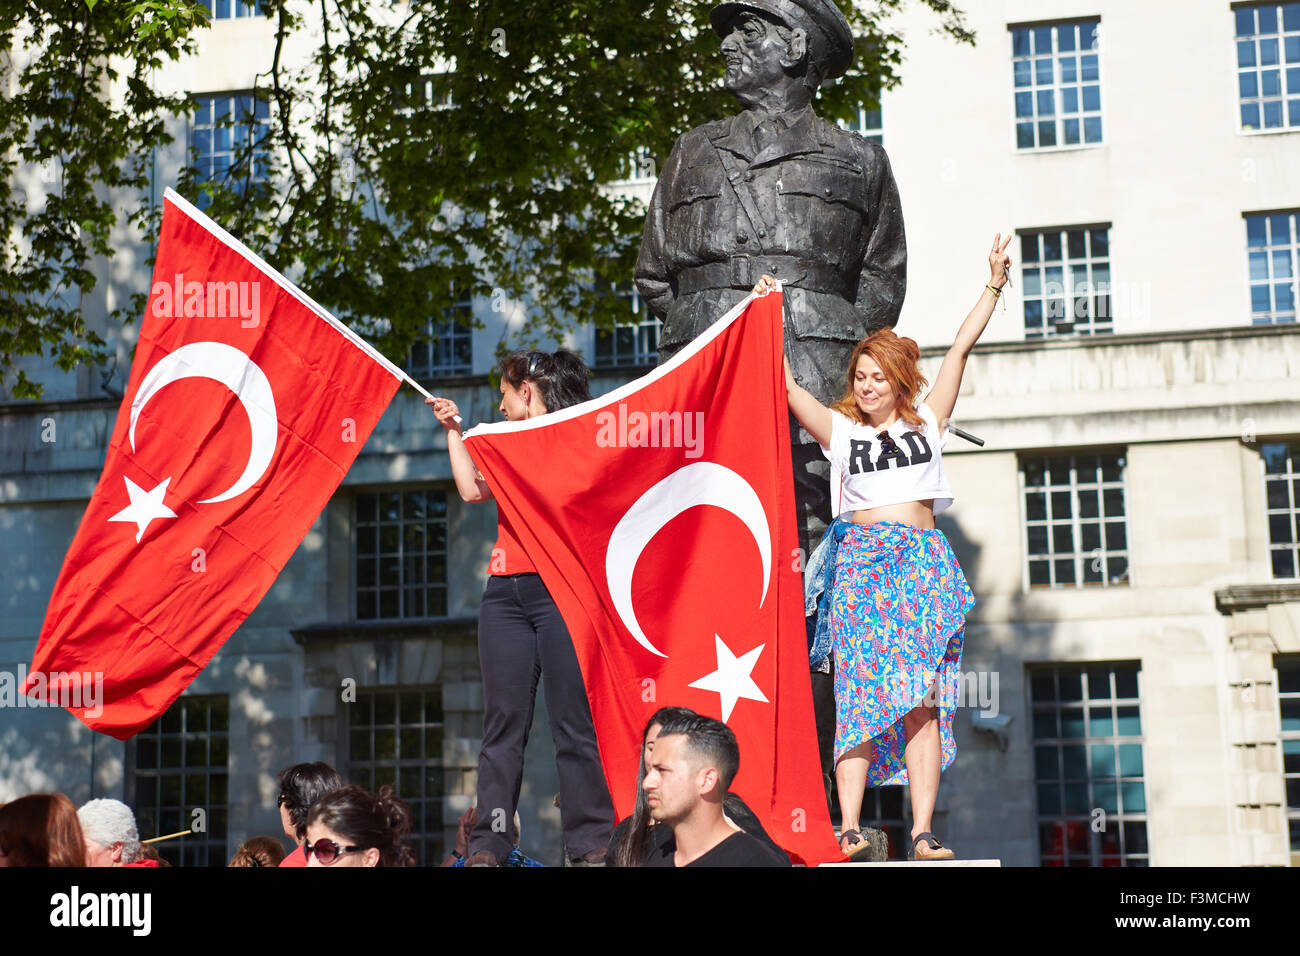 People protest in London against police violence in Turkey - Stock Image